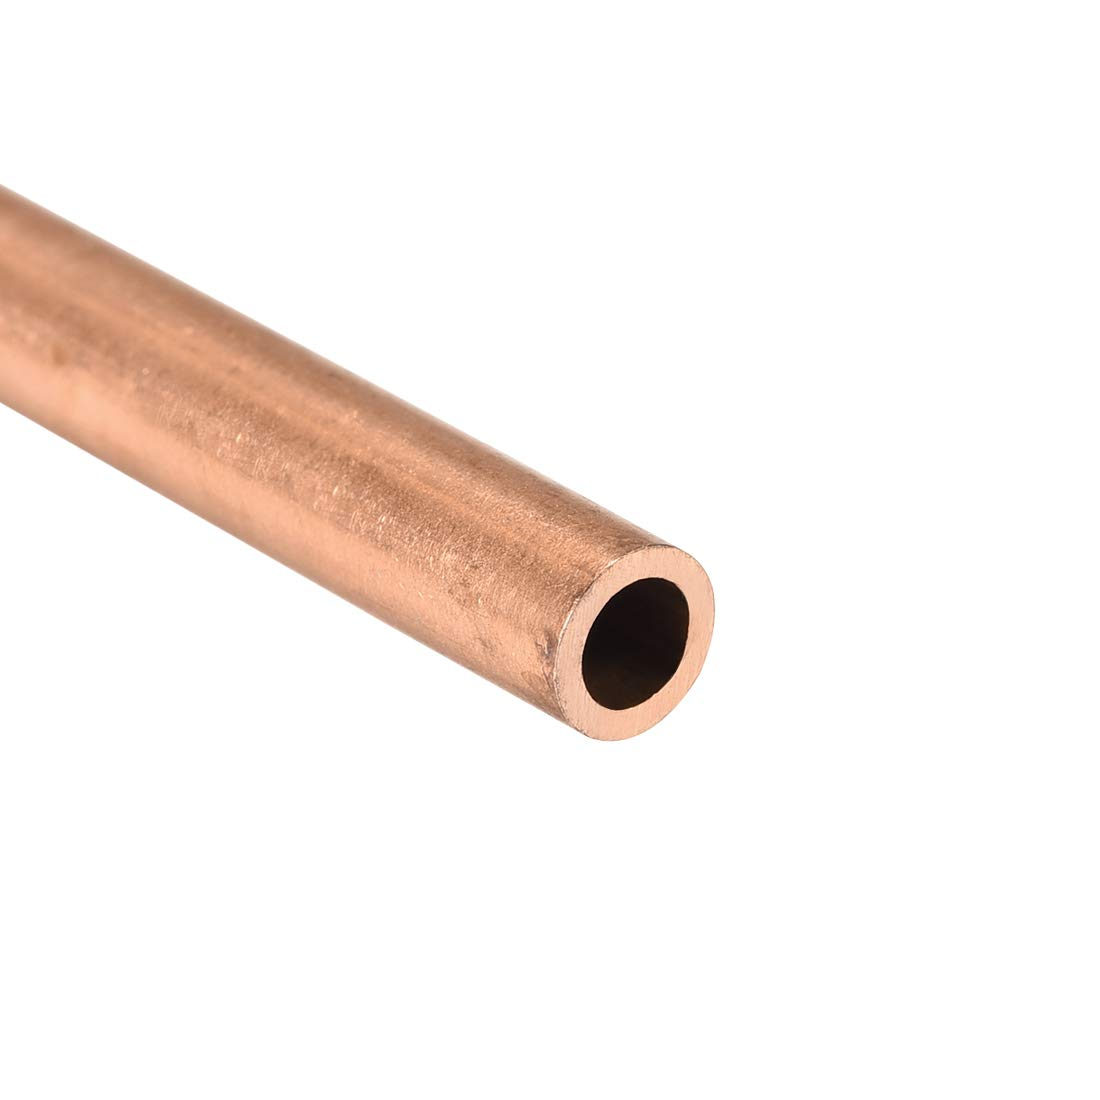 Copper Round Tube 27mm OD 1mm Wall Thickness 100mm Length Pipe Tubing